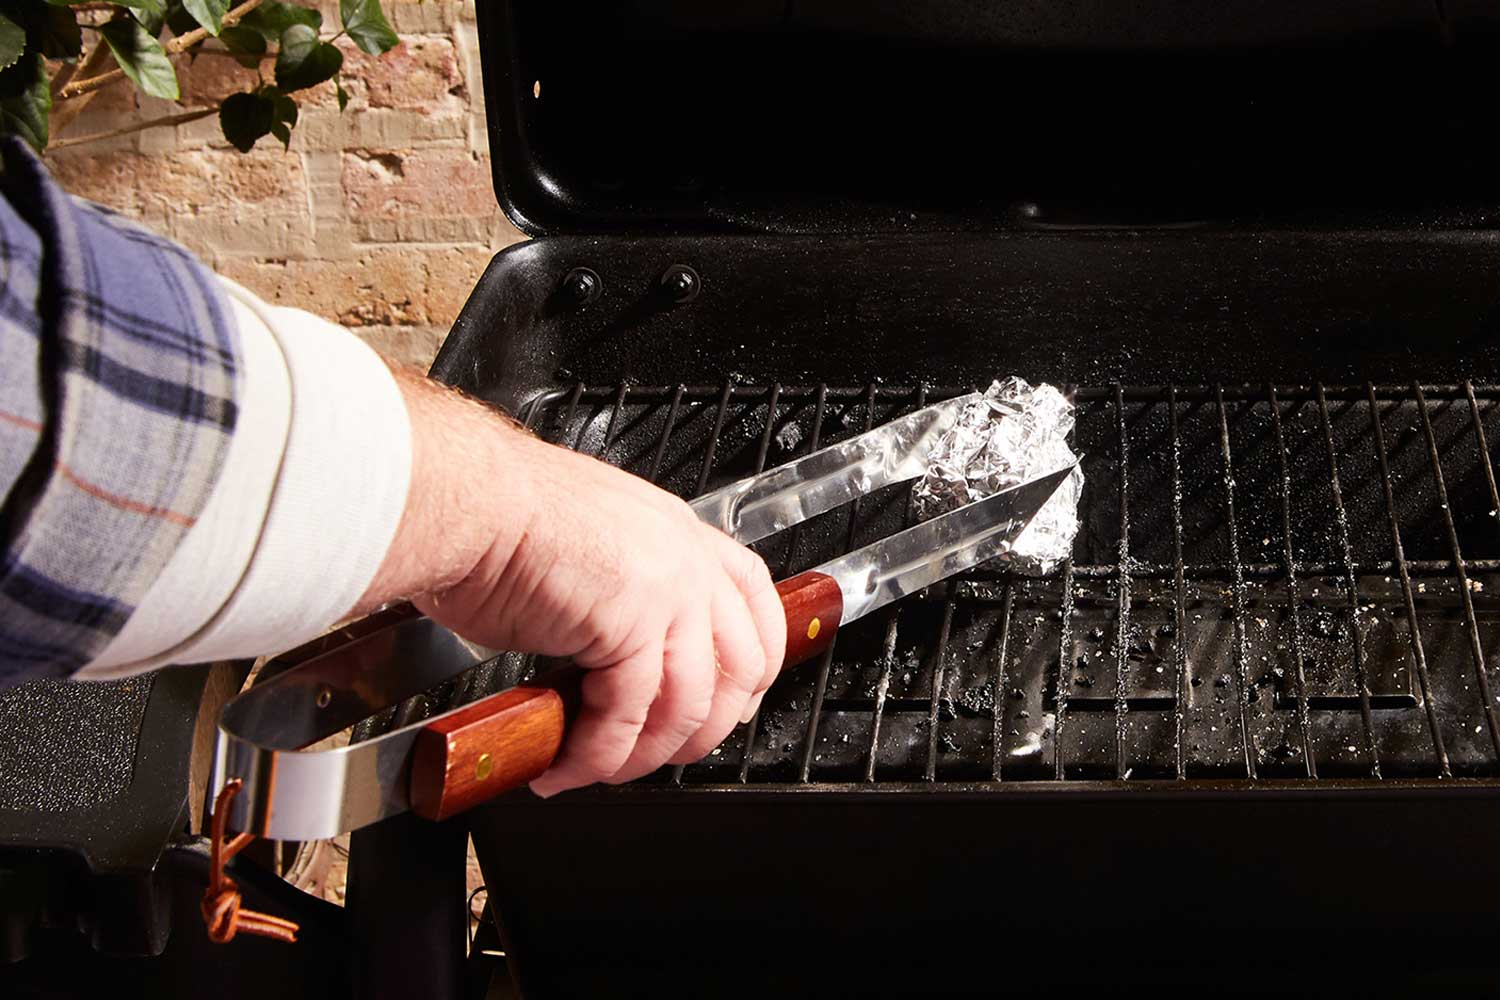 How to Clean a Grill with ALCAN Foil